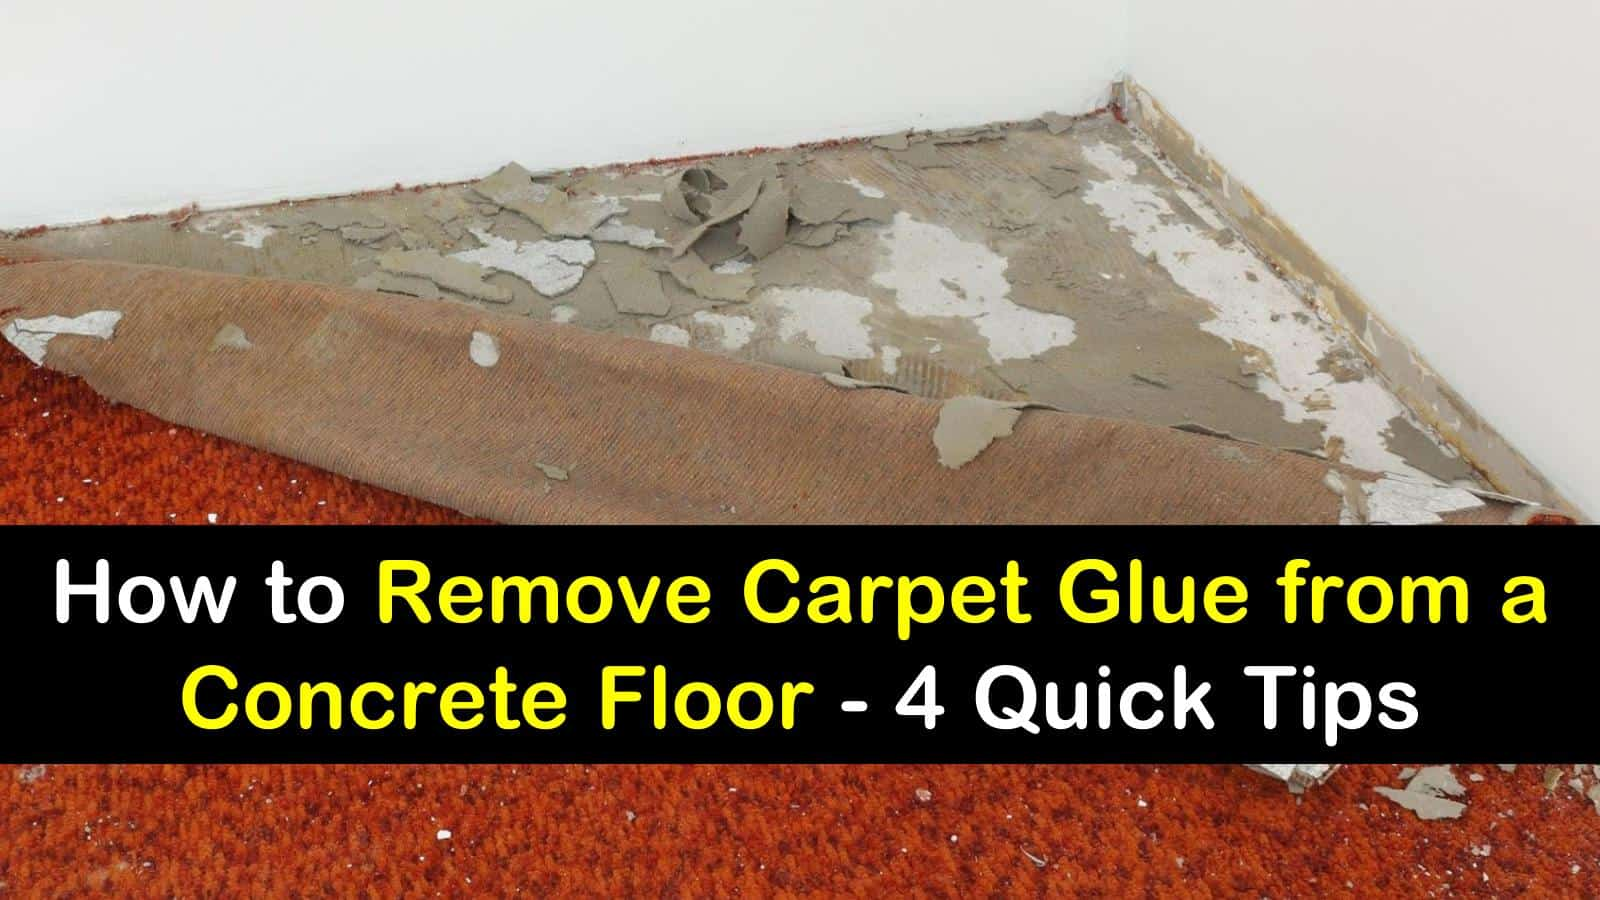 to remove carpet glue from a concrete floor